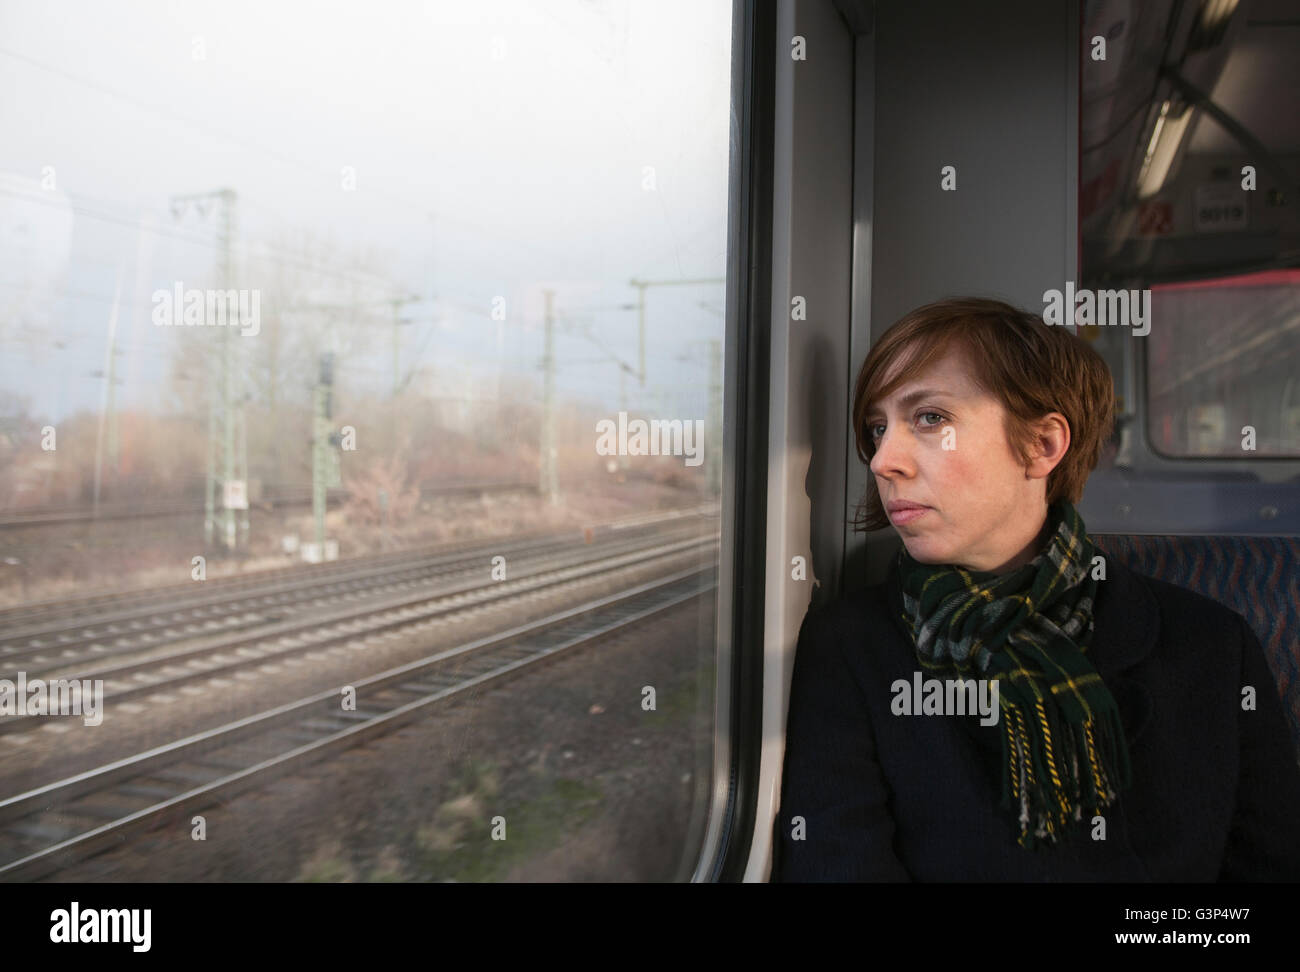 Germany, Mid adult woman on train looking through window - Stock Image